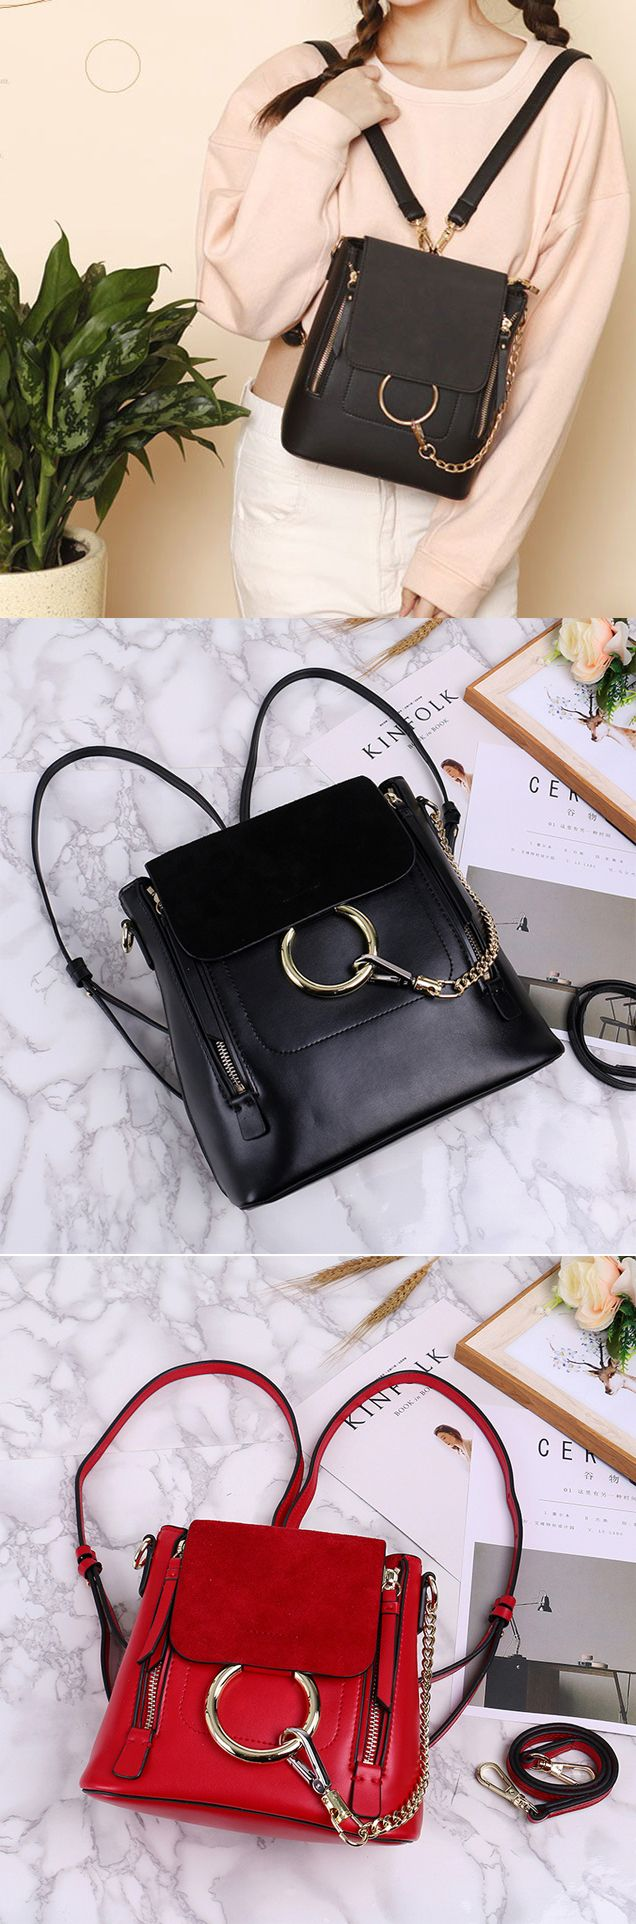 2017 New Arrival Fashion Splicing Frosted PU Metallic Chain Circular Ring School Backpack